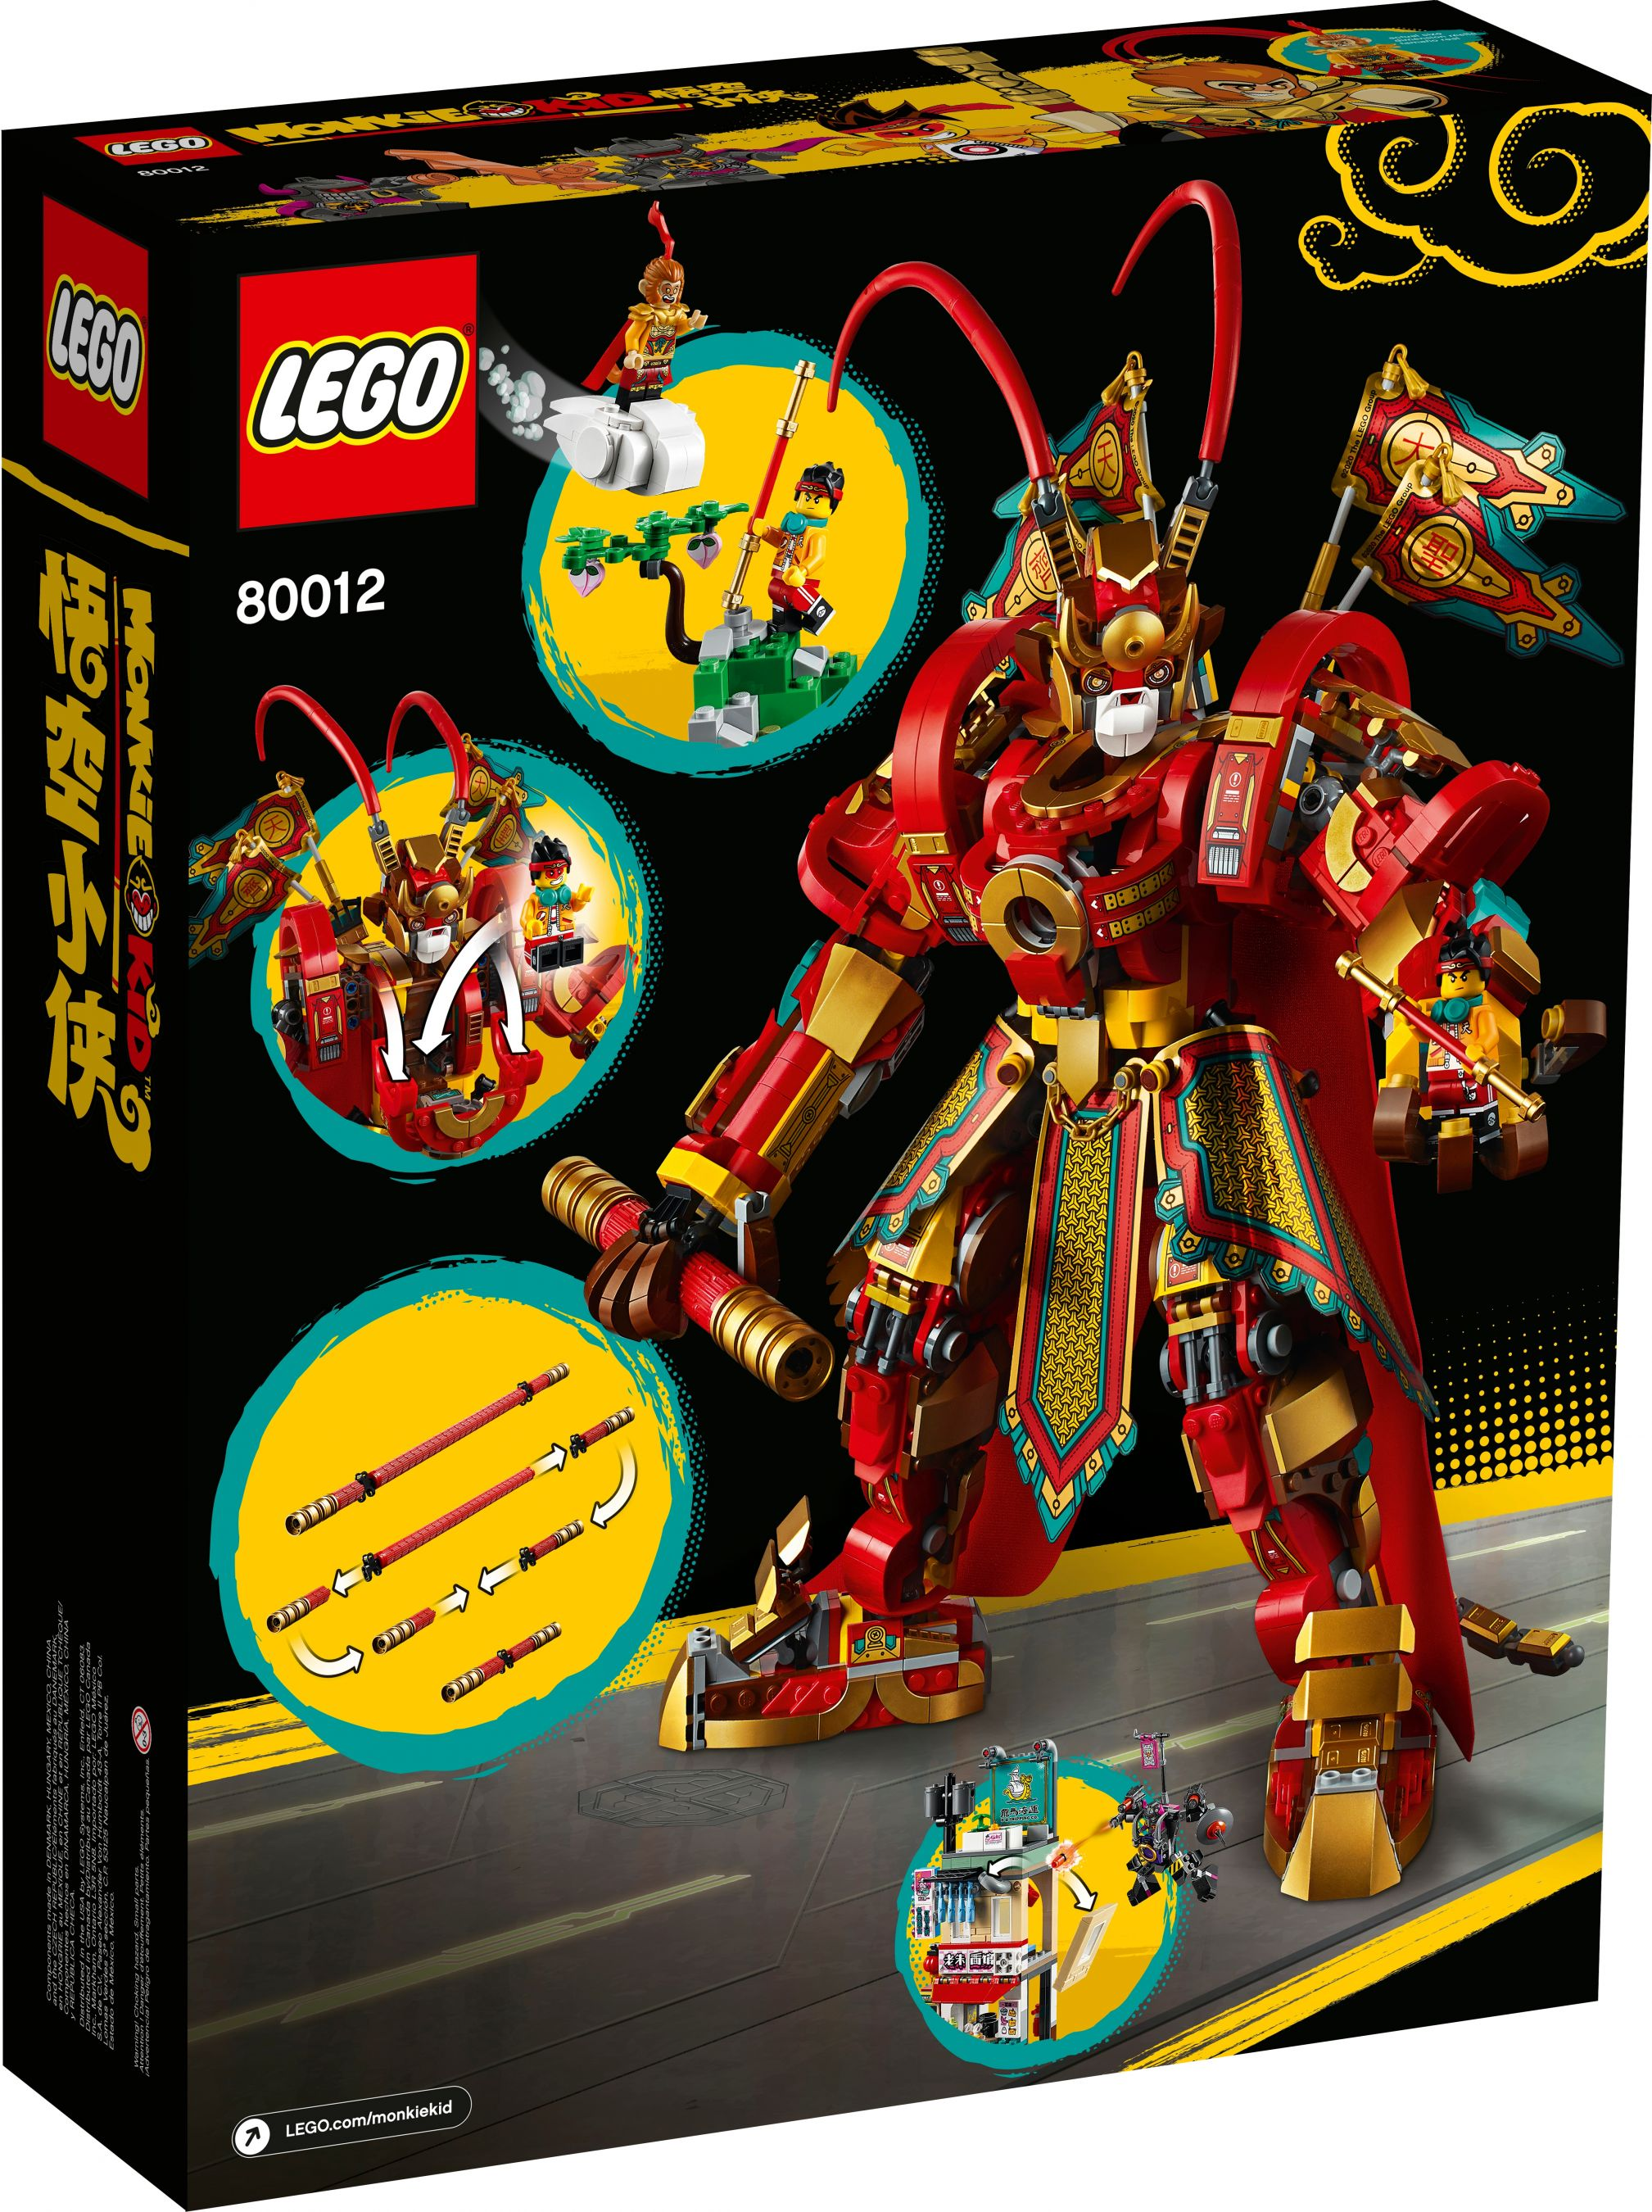 LEGO Monkie Kid 80012 Monkey King Mech LEGO_80012_alt9.jpg